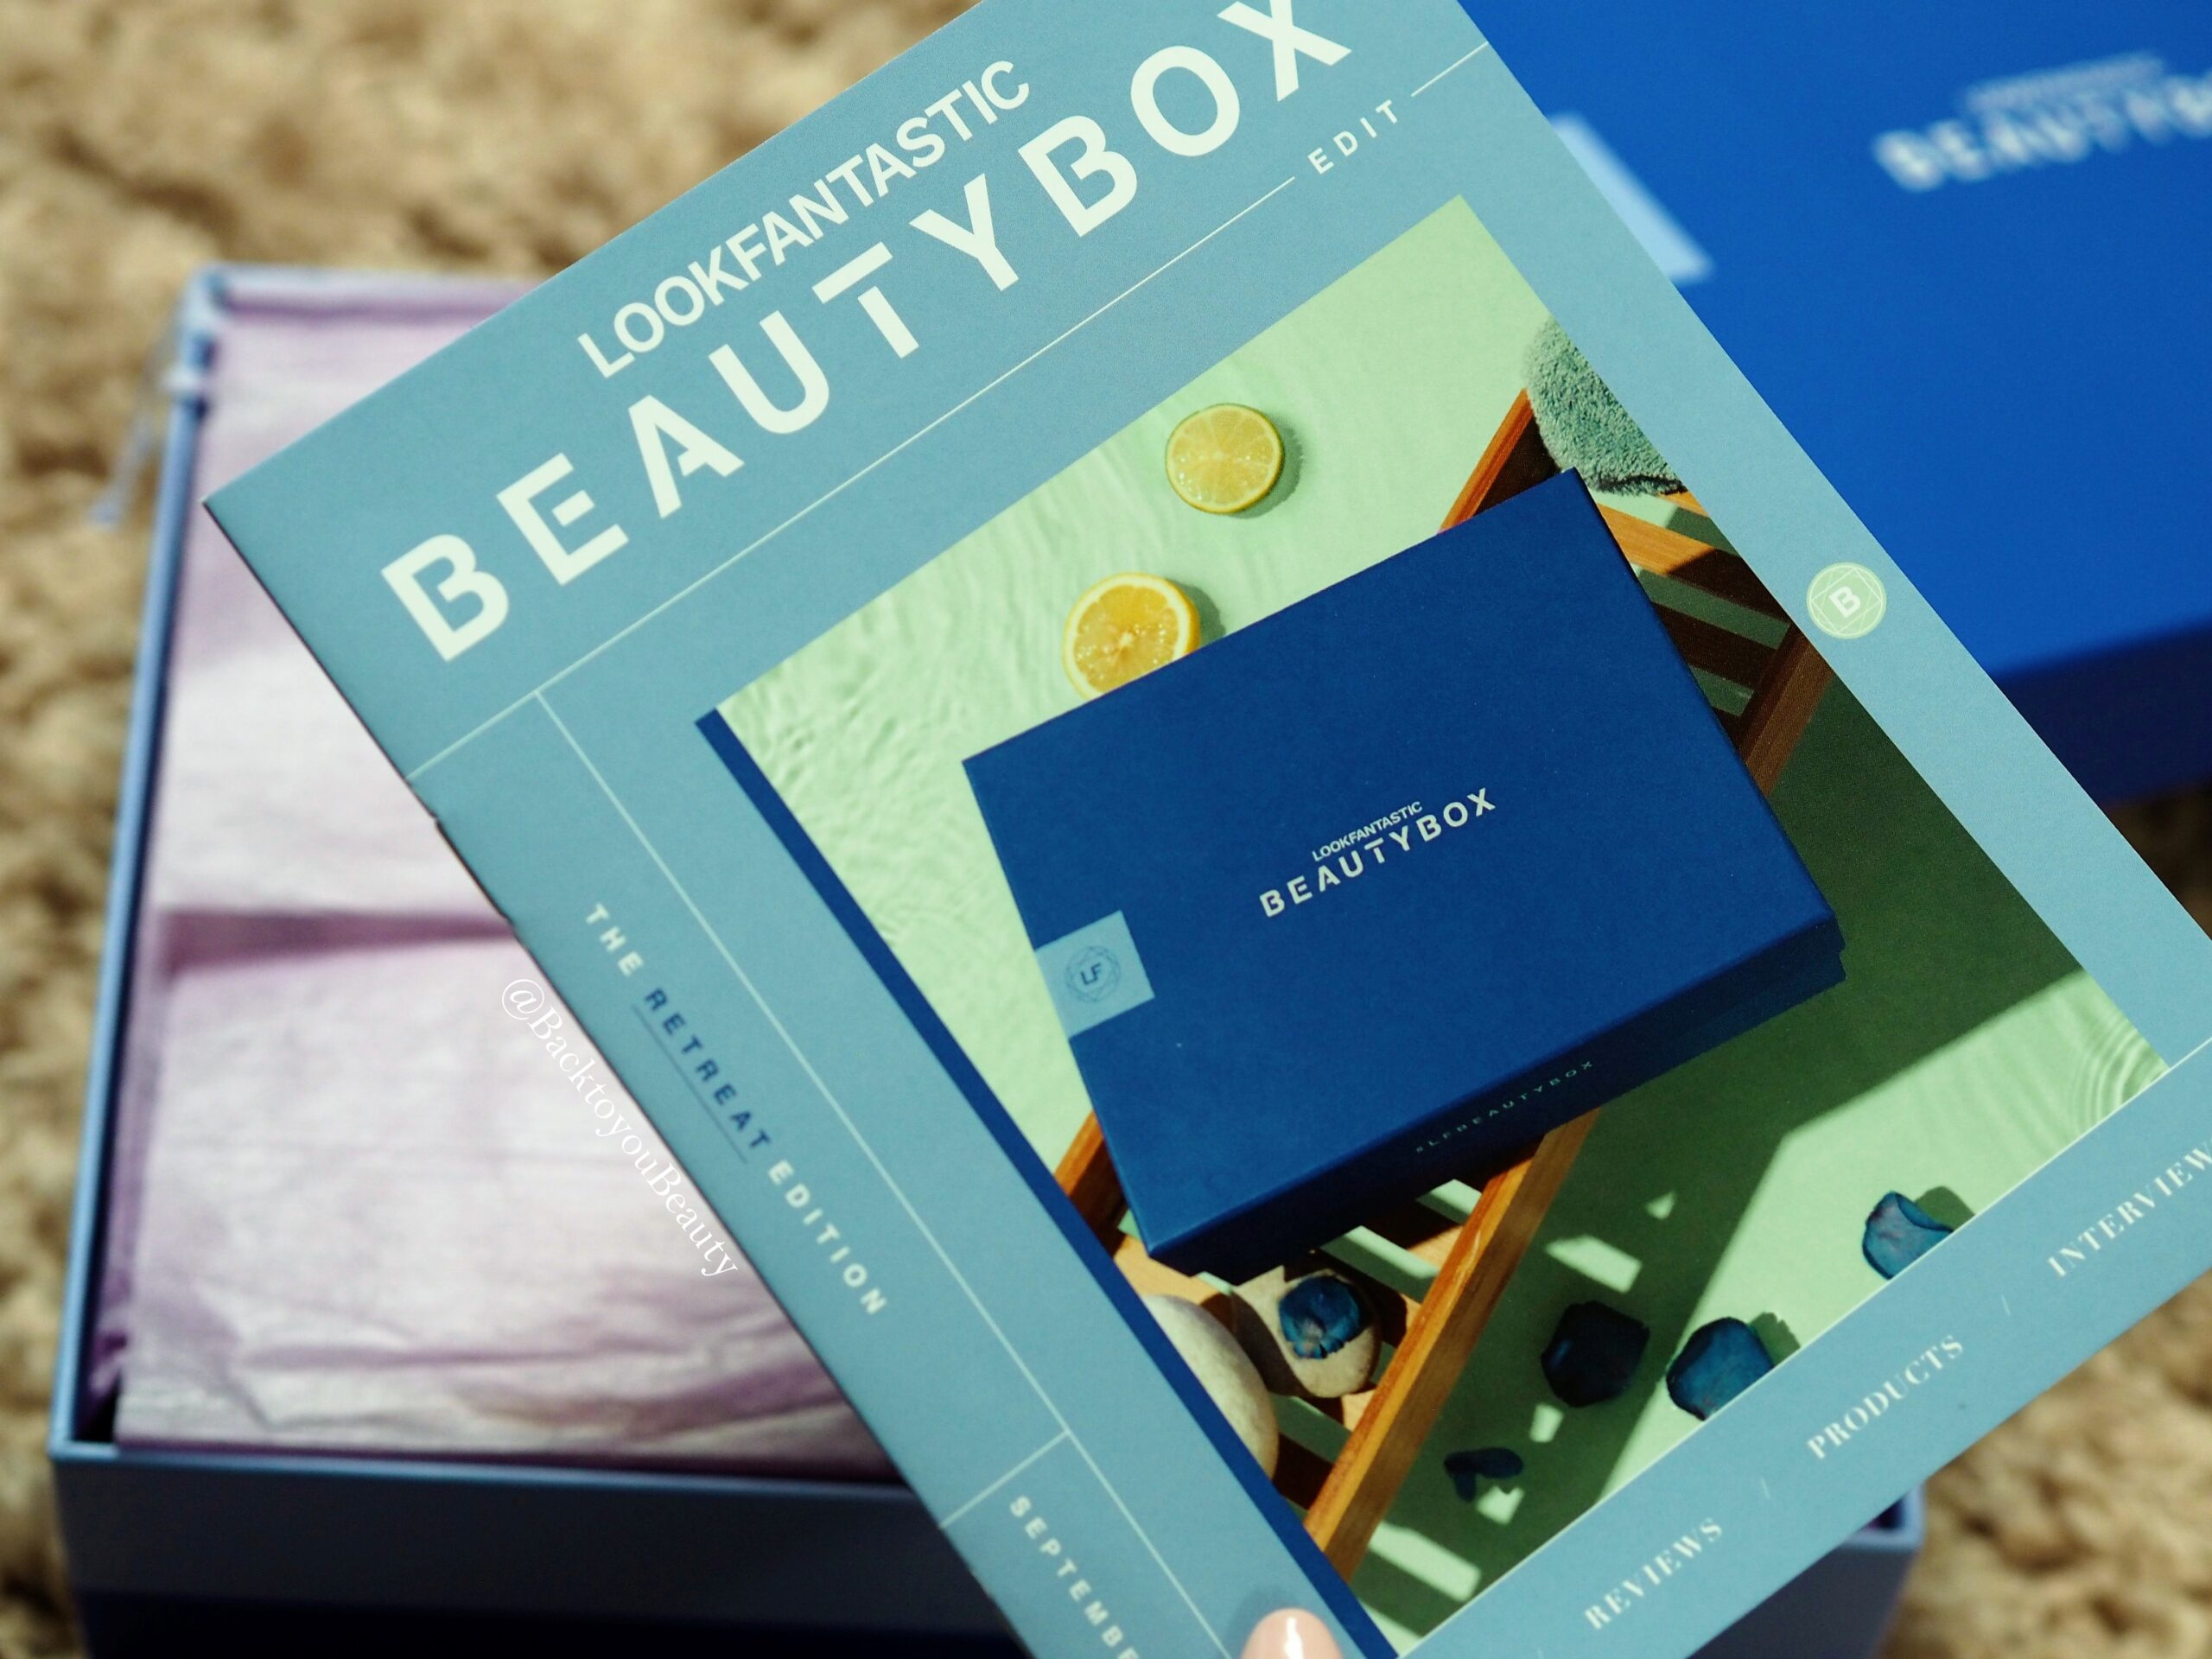 Look fantastic sept beauty box